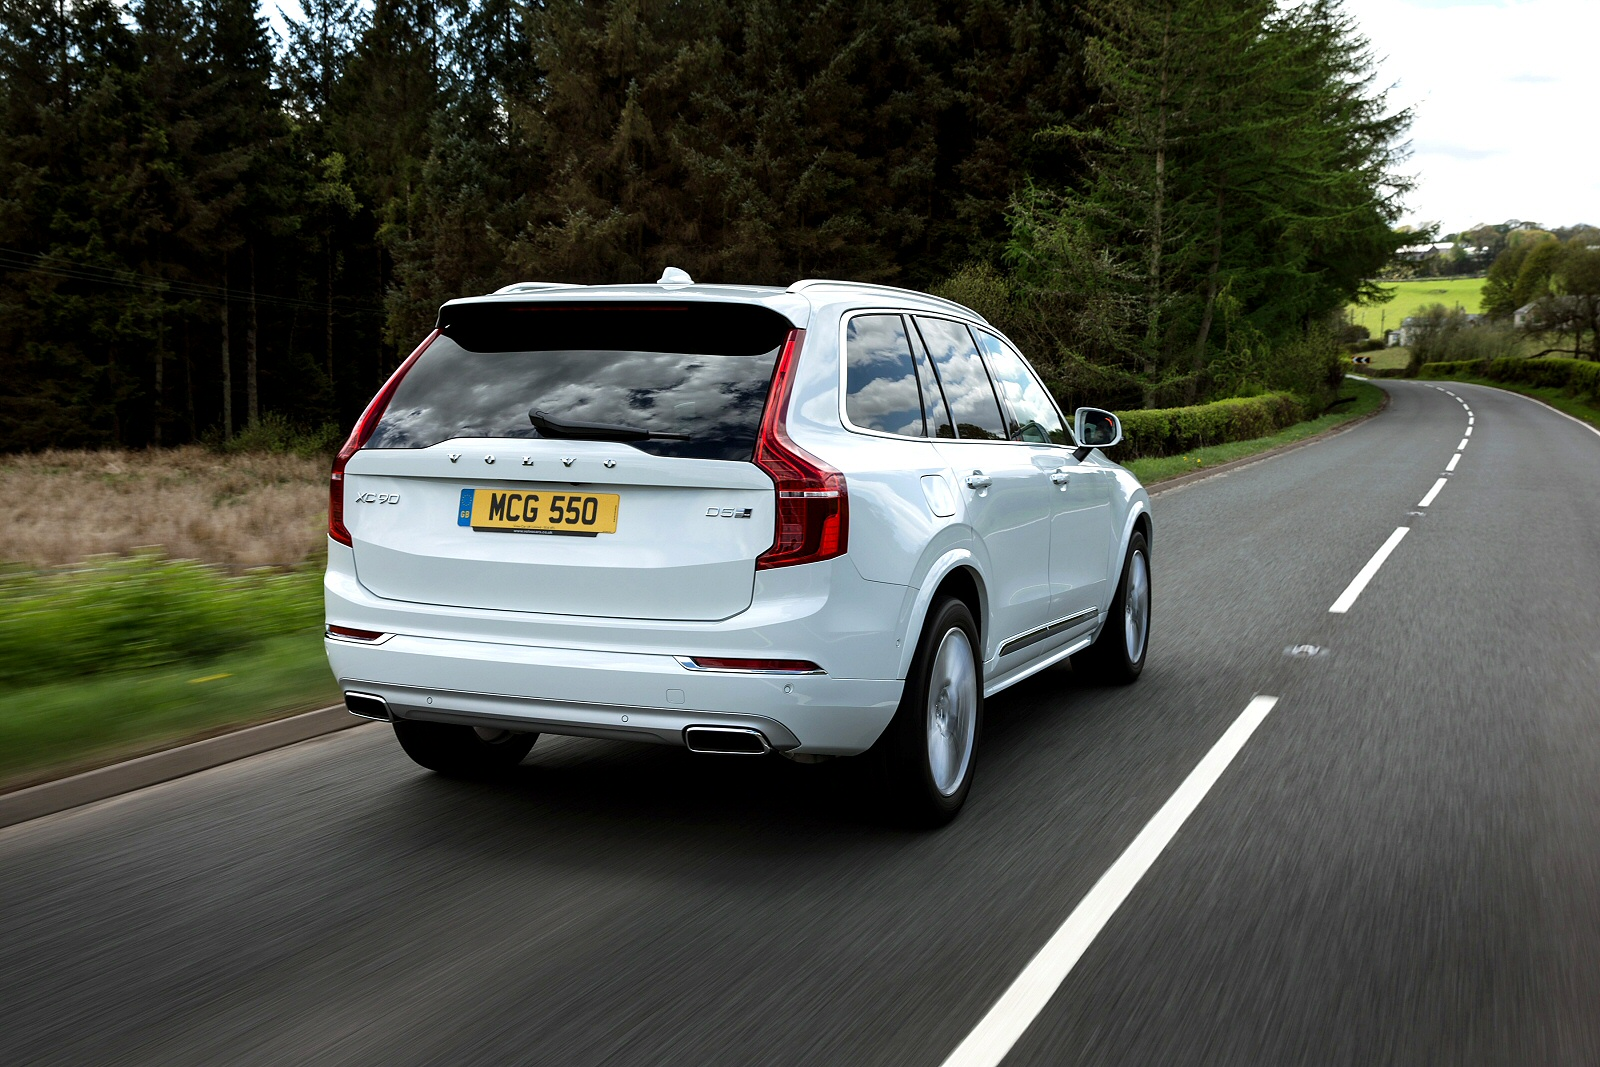 New Volvo Xc90 2.0 T5 [250] Momentum 5Dr Awd Gtron Petrol Estate for Sale | Bristol Street